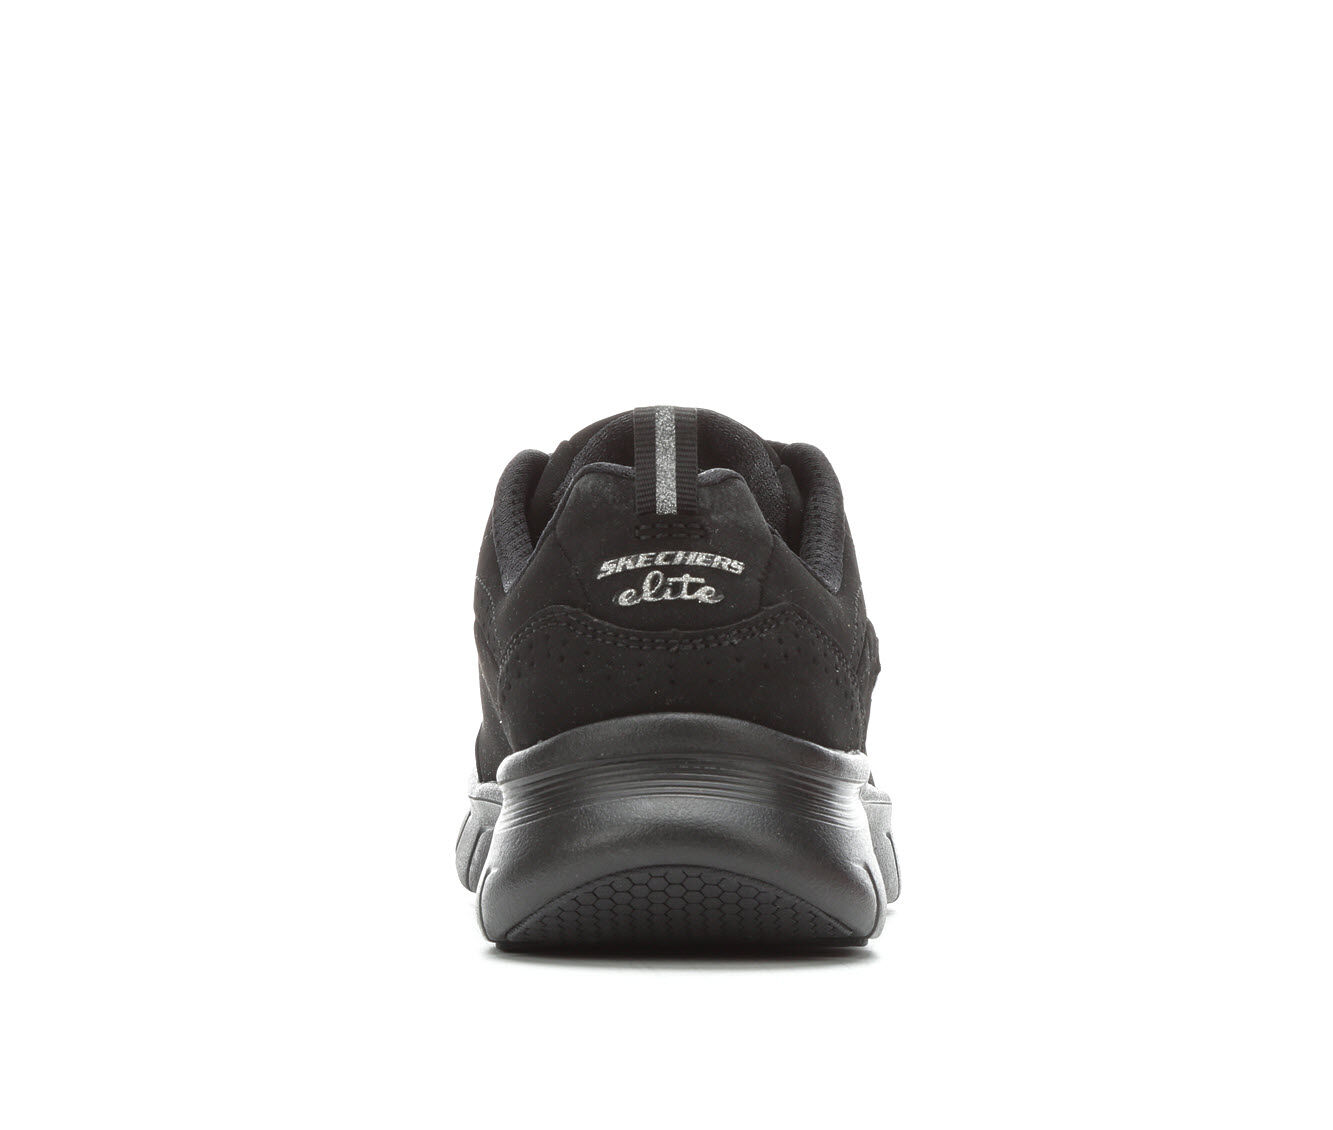 Women's Skechers Out and About 13261 Sneakers